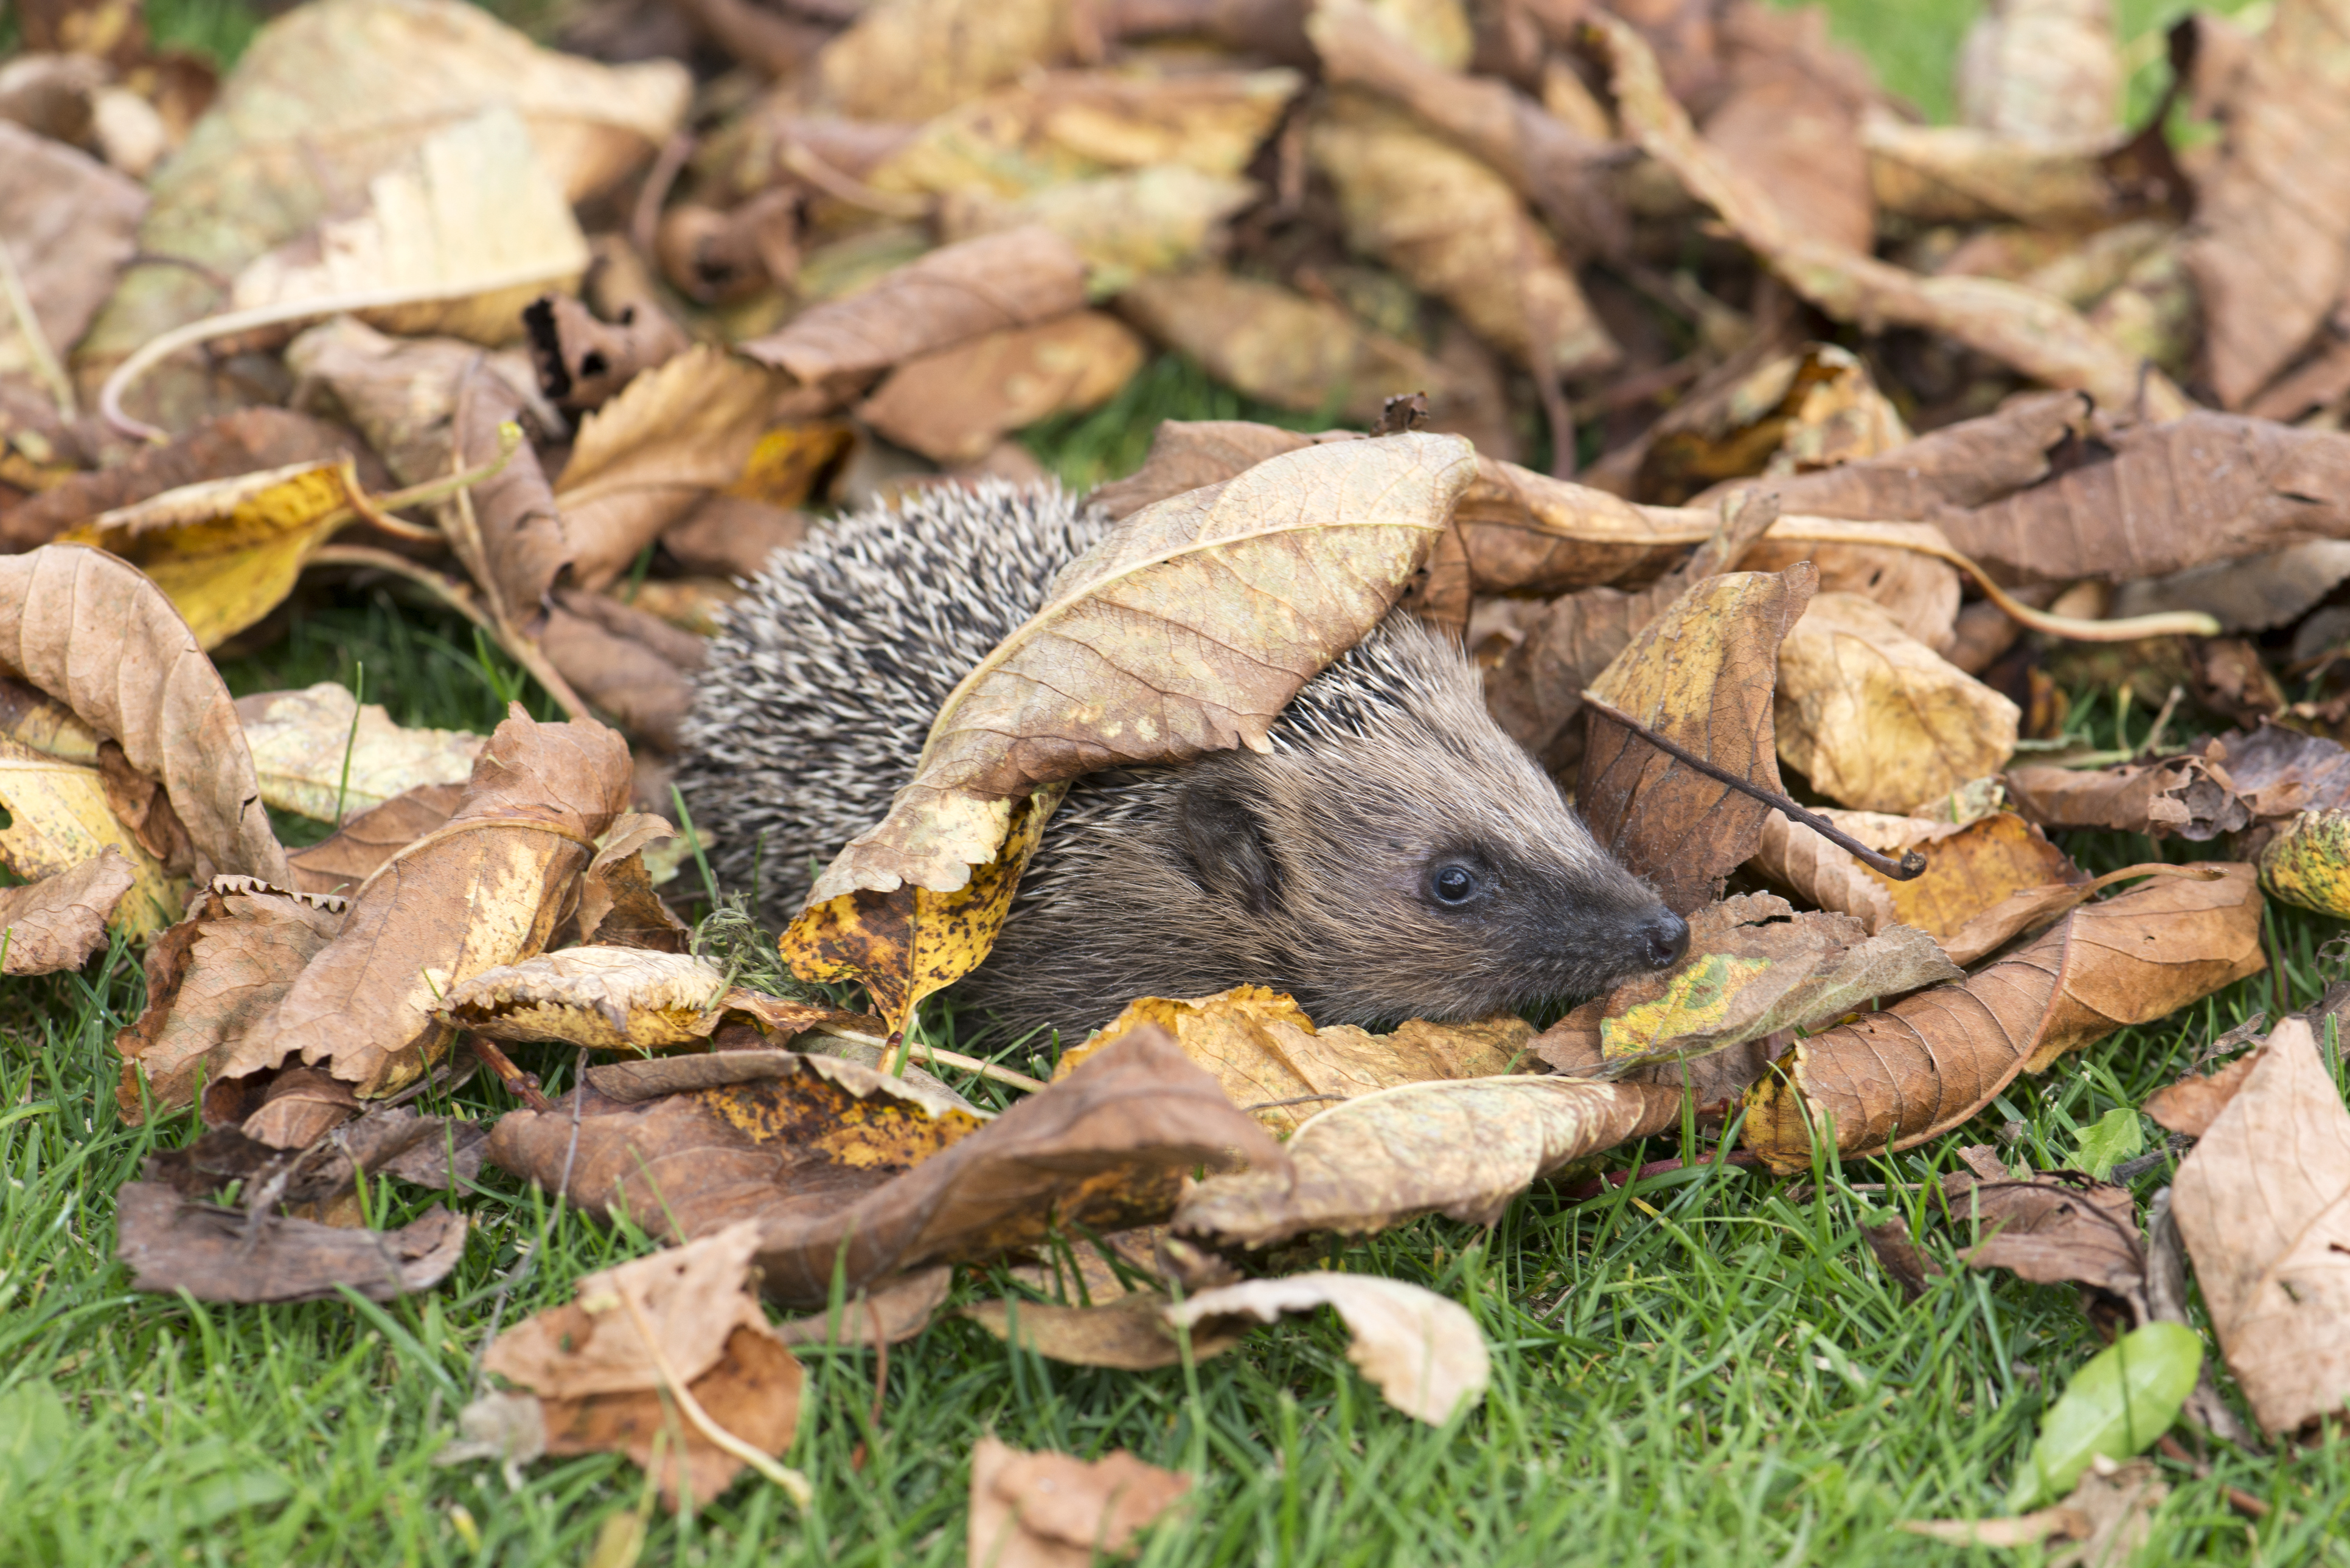 A hedgehog takes refuge under leaves (Thinkstock/PA)